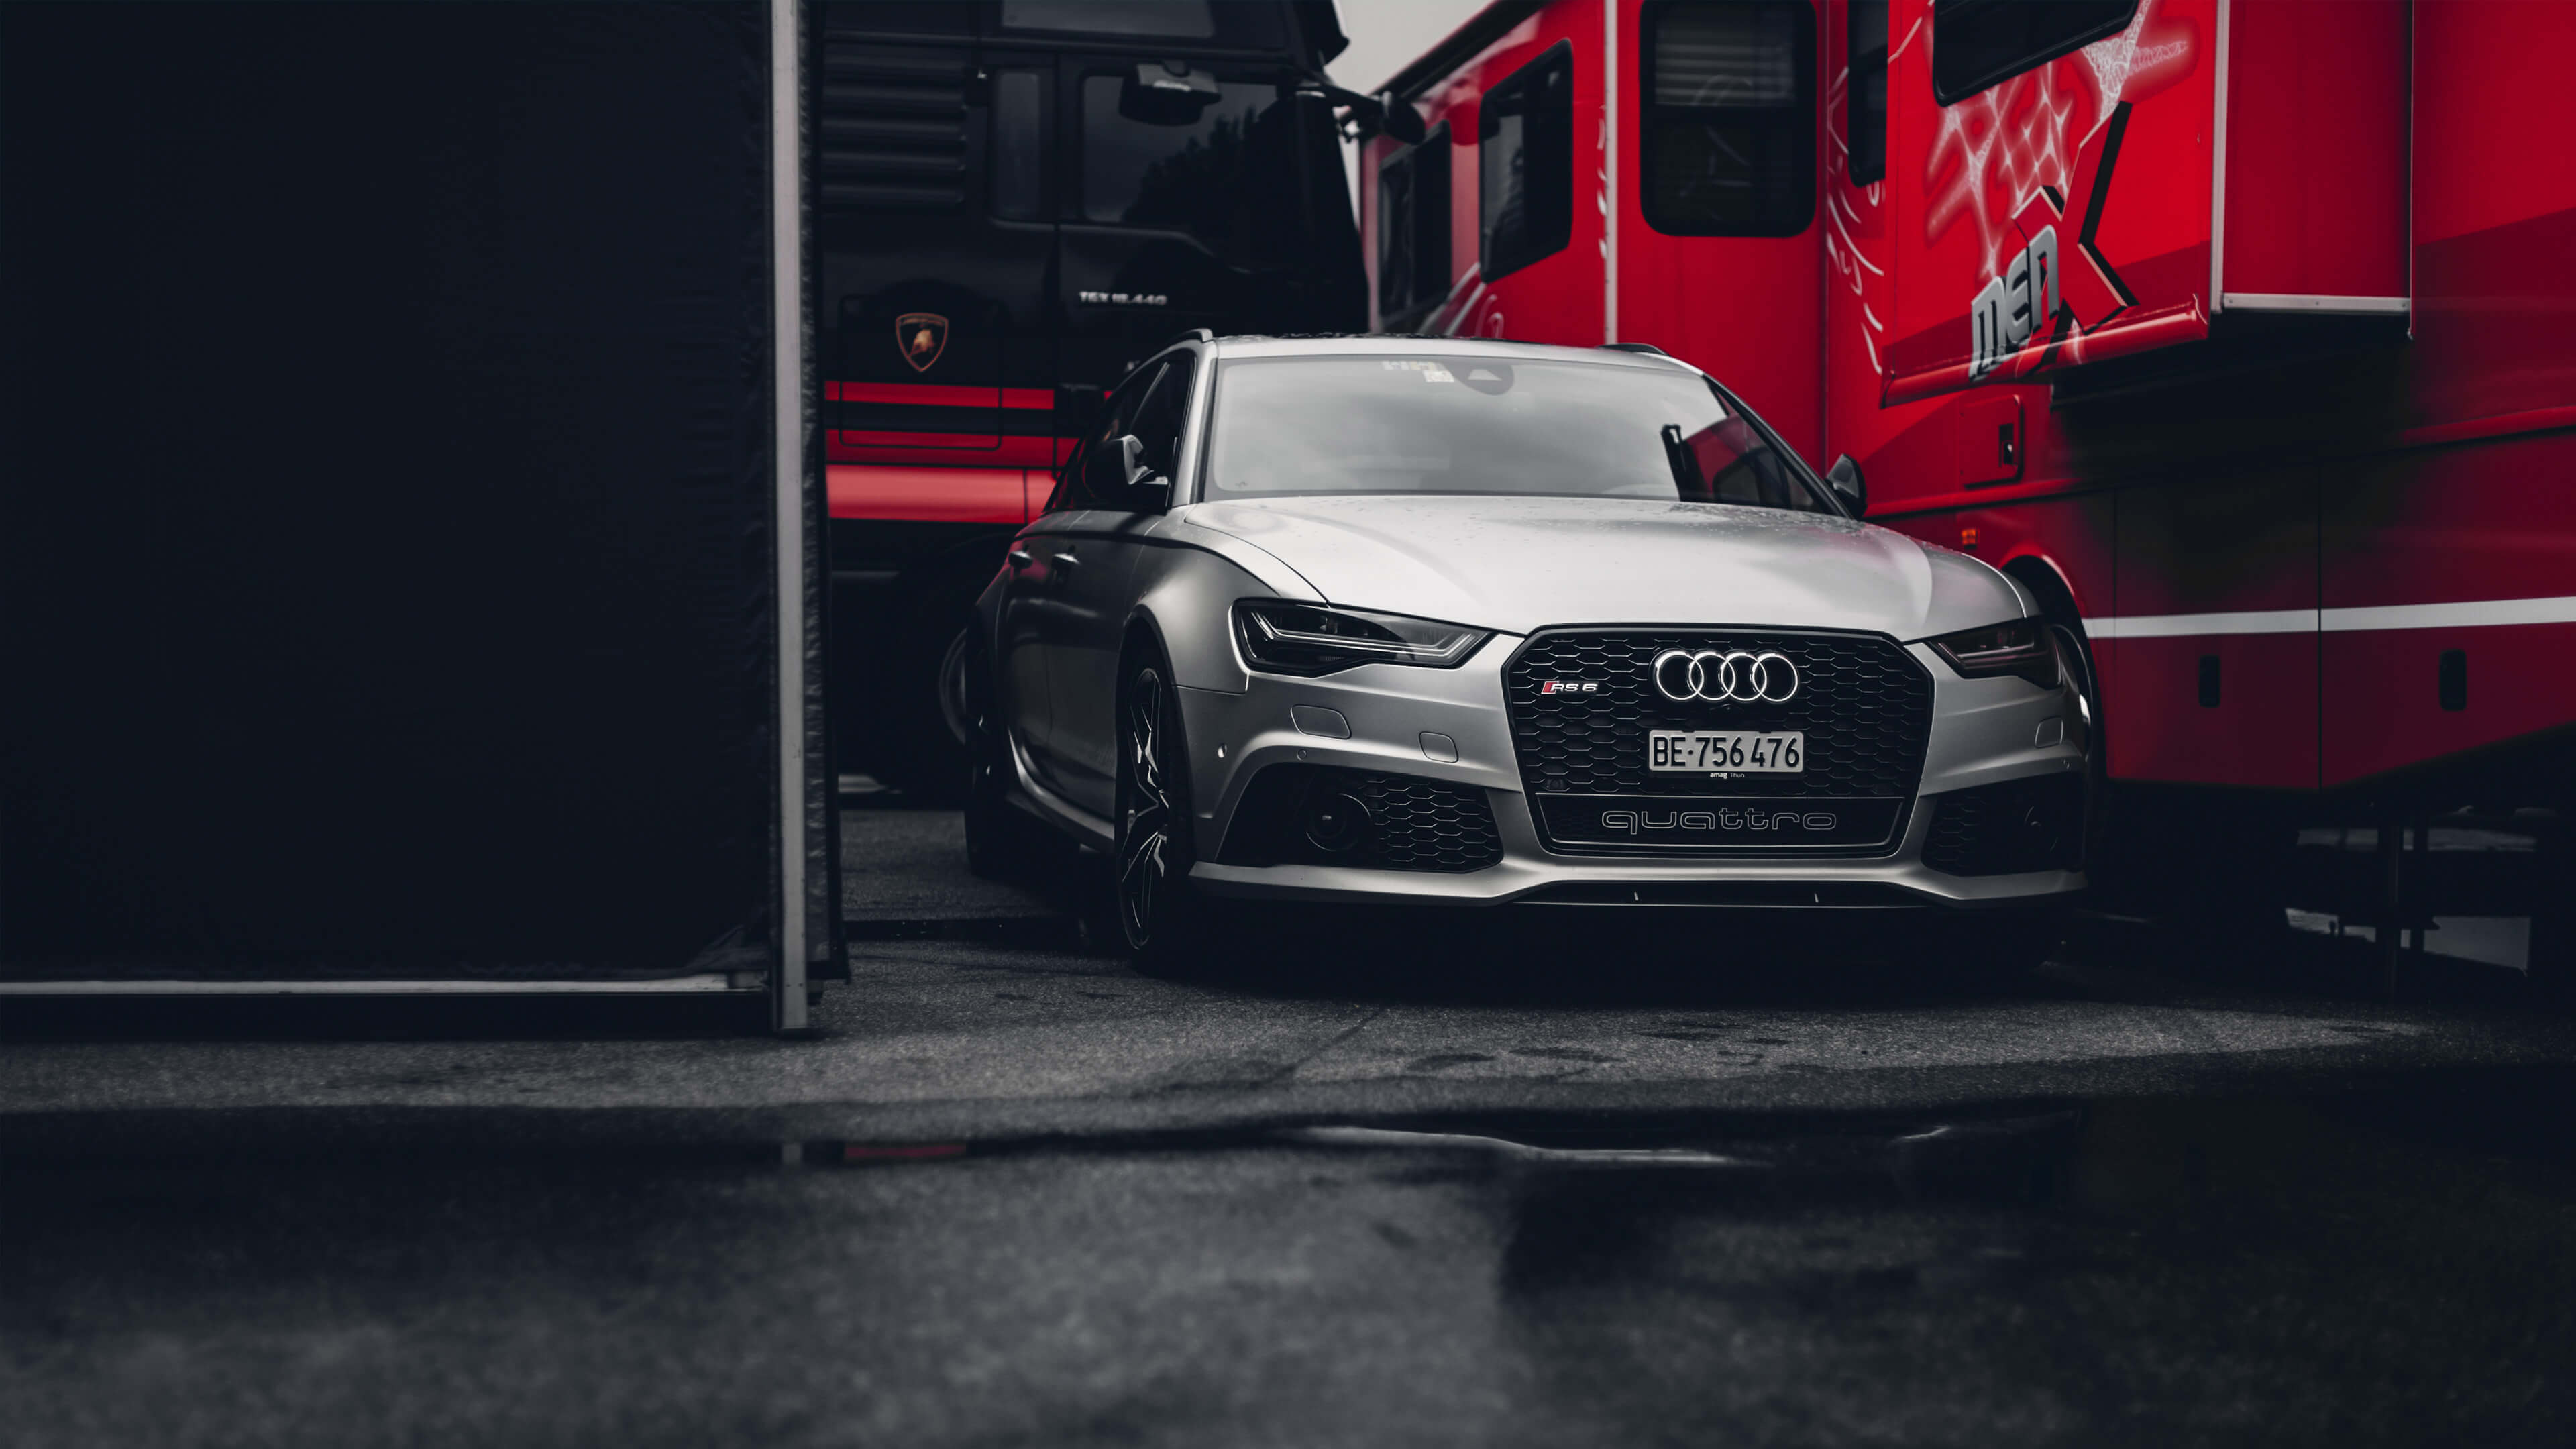 3840x2160 - Audi RS6 Wallpapers 28